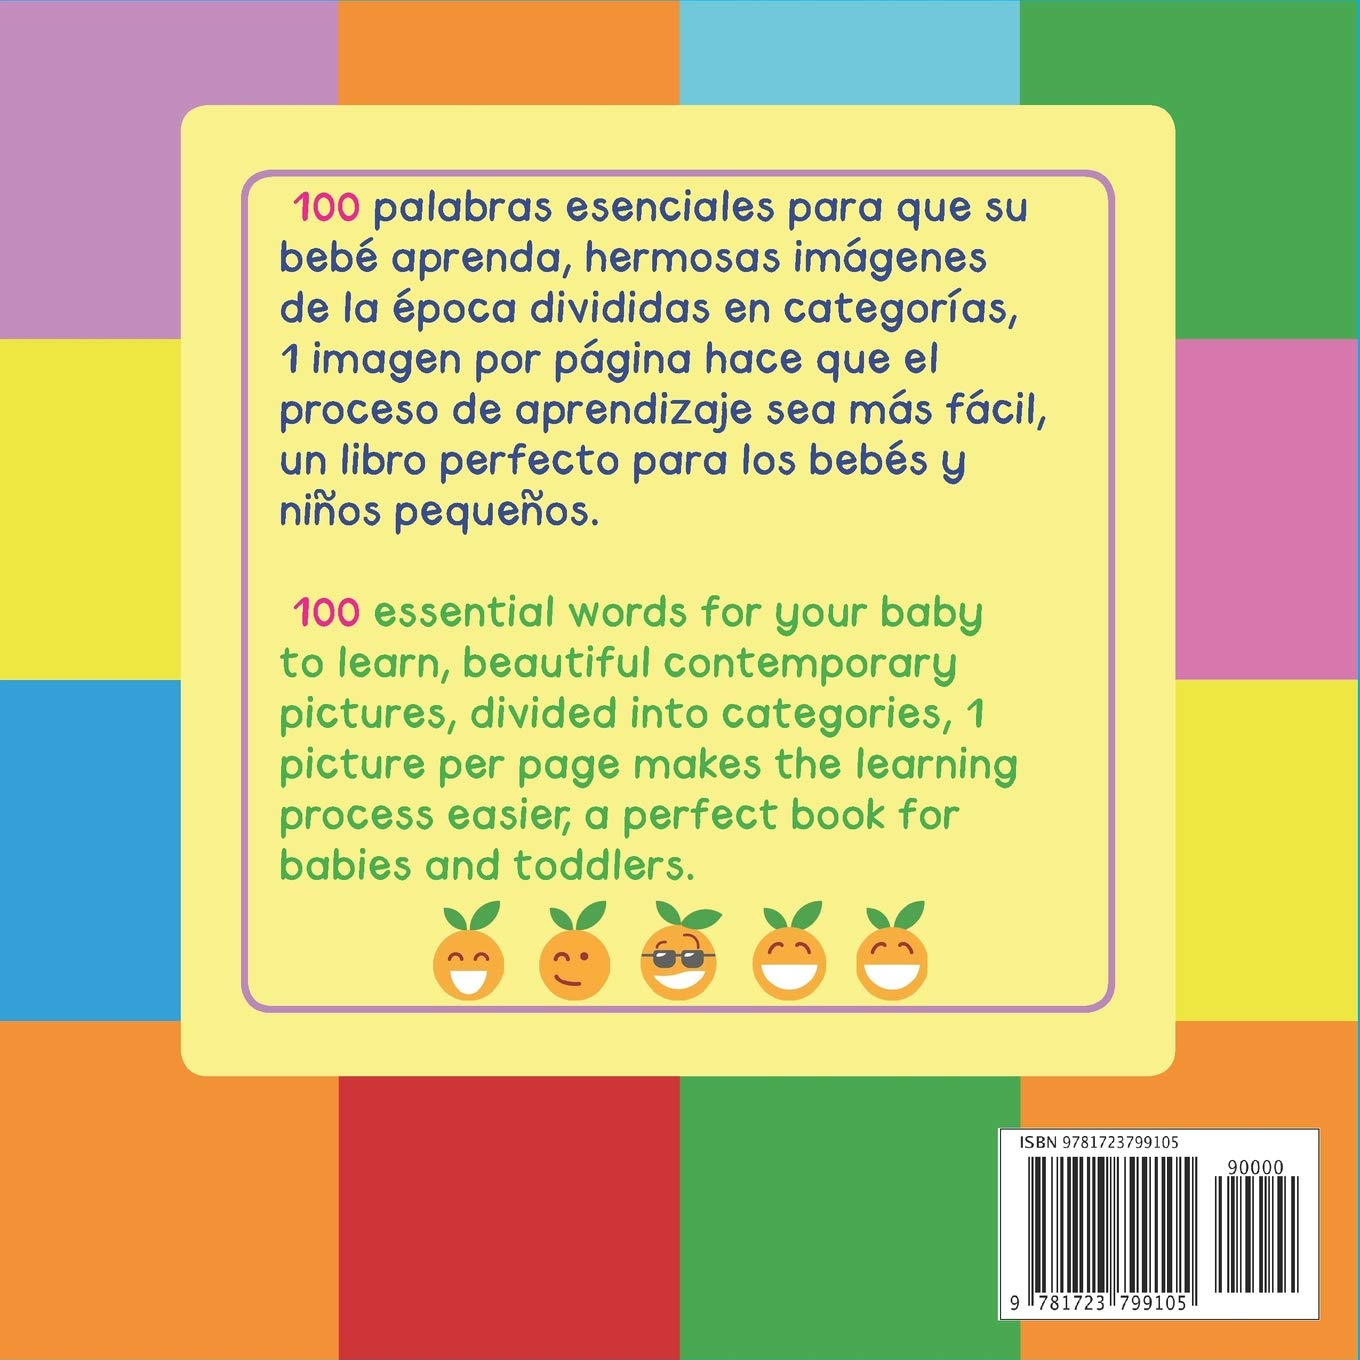 First 100 Essential Words Bilingual Spanish English (Spanish Edition): Mary King: 9781723799105: Amazon.com: Books